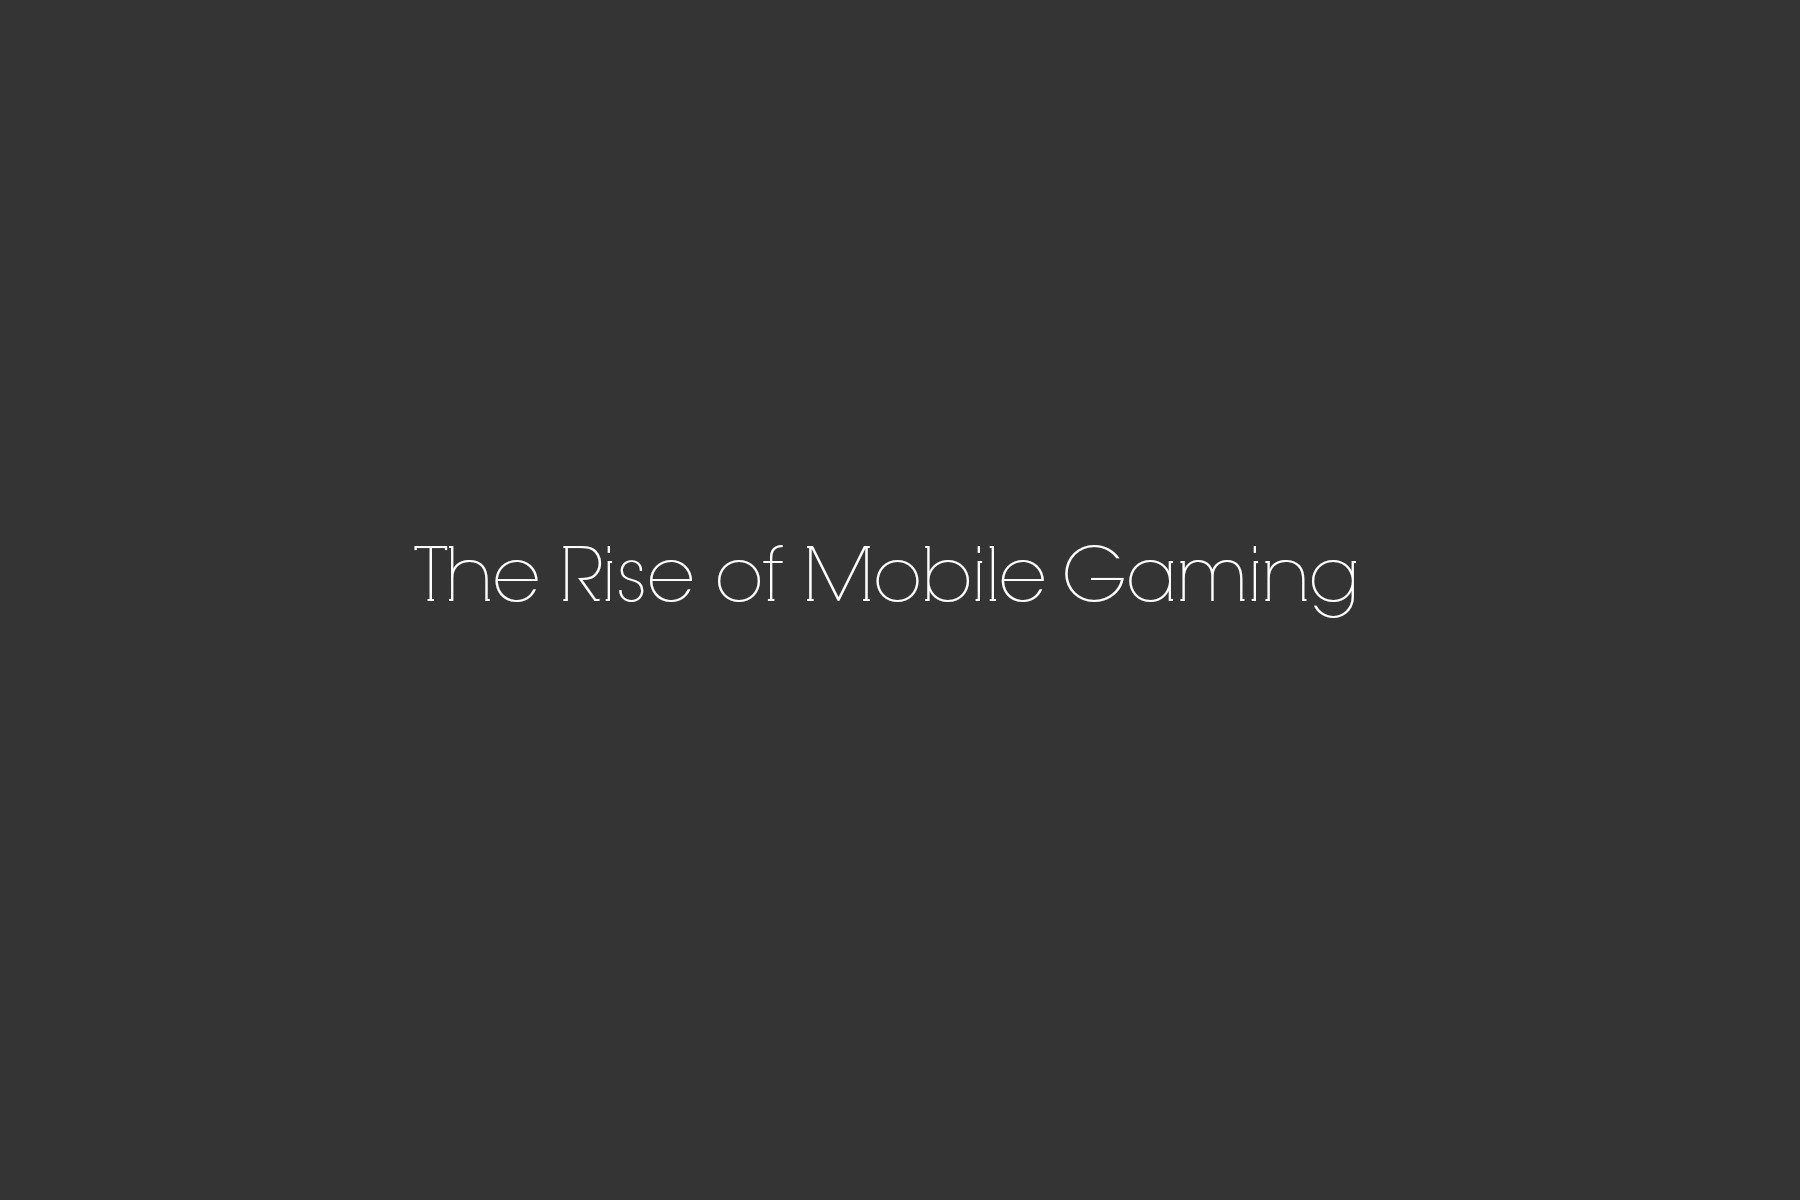 Rise of Mobile Gaming Infographic. Are You Part of The Movement? #gaming